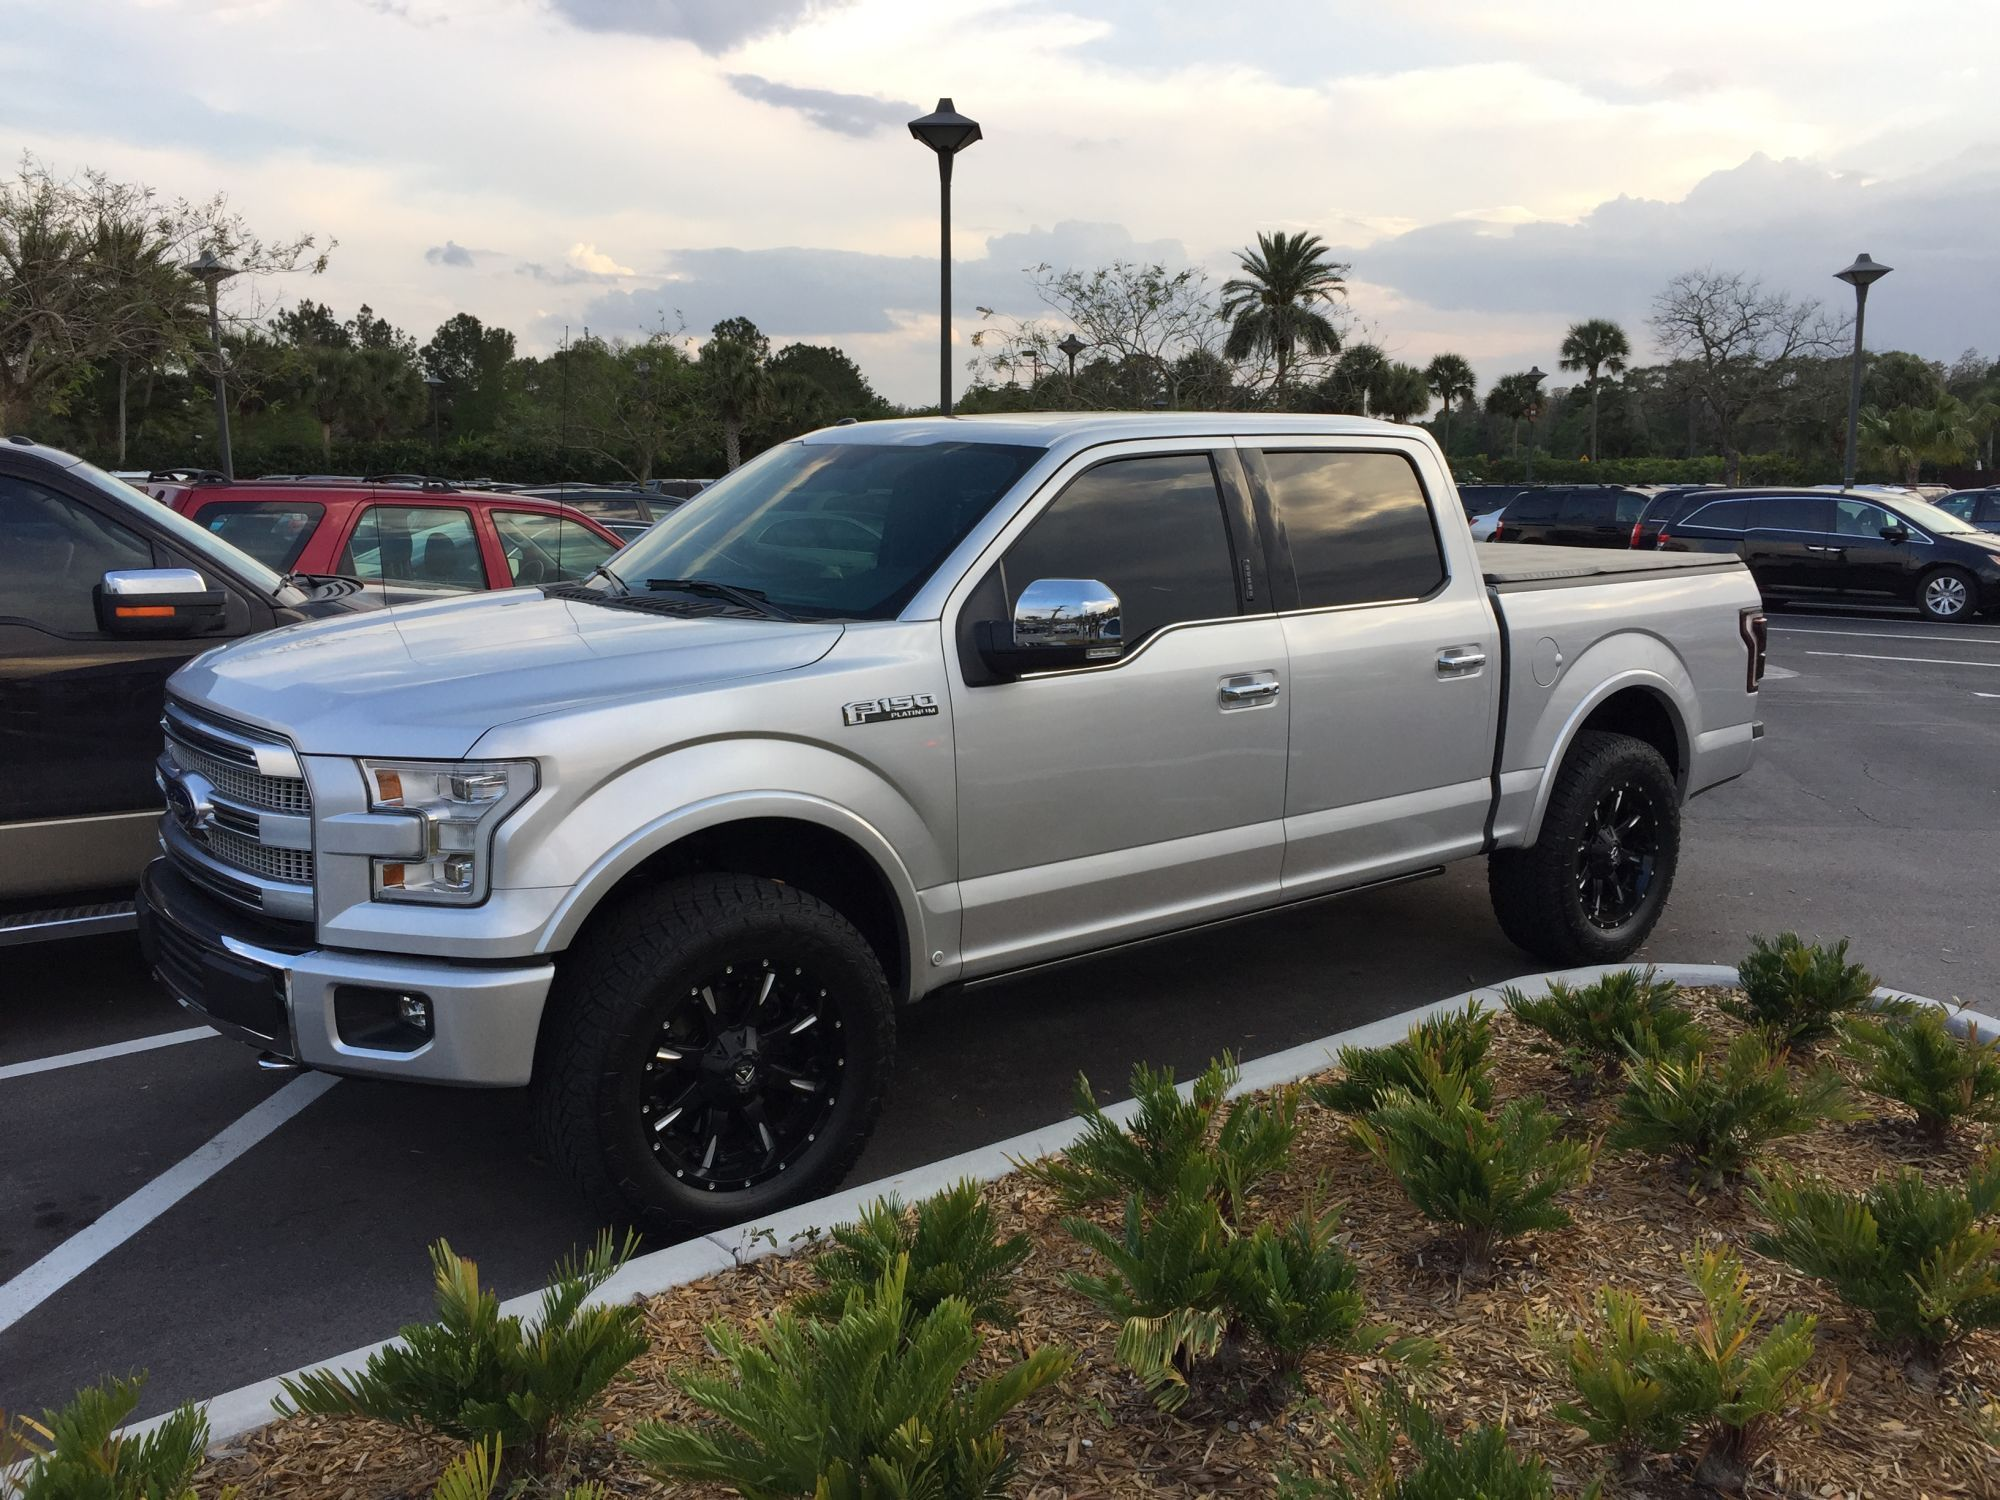 Rough country leveling kit and tire ideas ford f150 forum community of ford truck